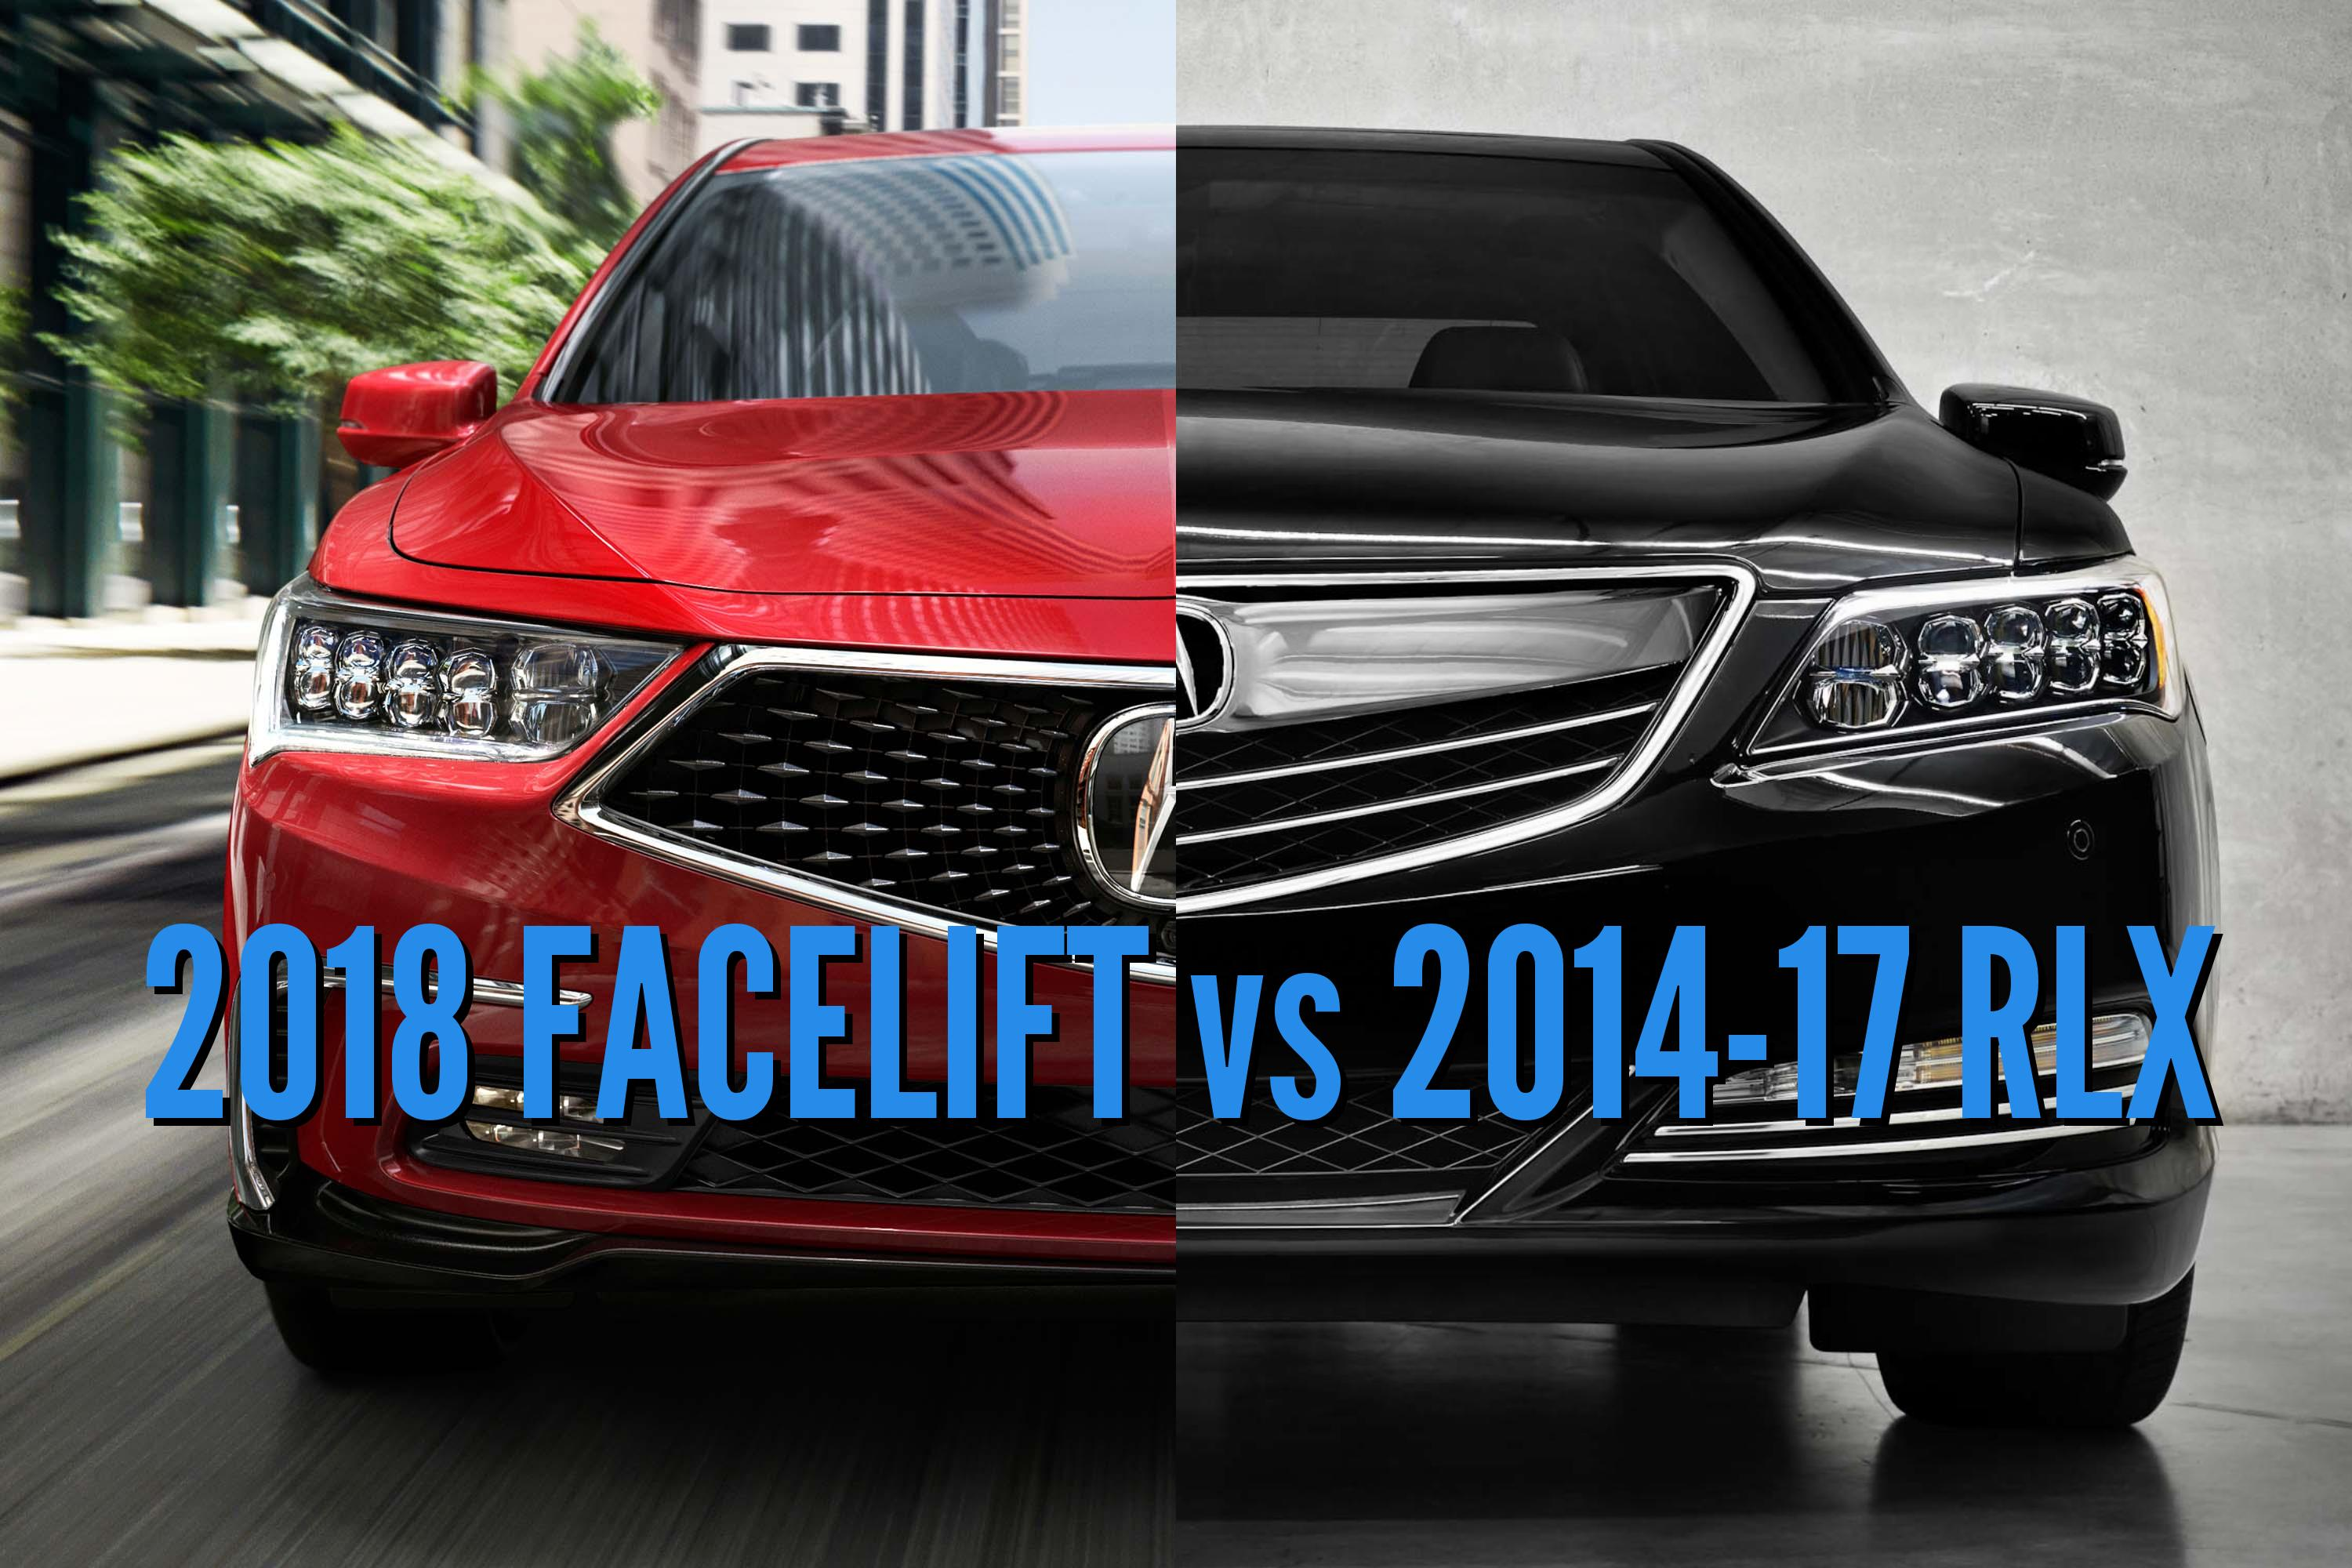 Comparison 2018 Acura Rlx Vs 2017 Facelift Changes In S